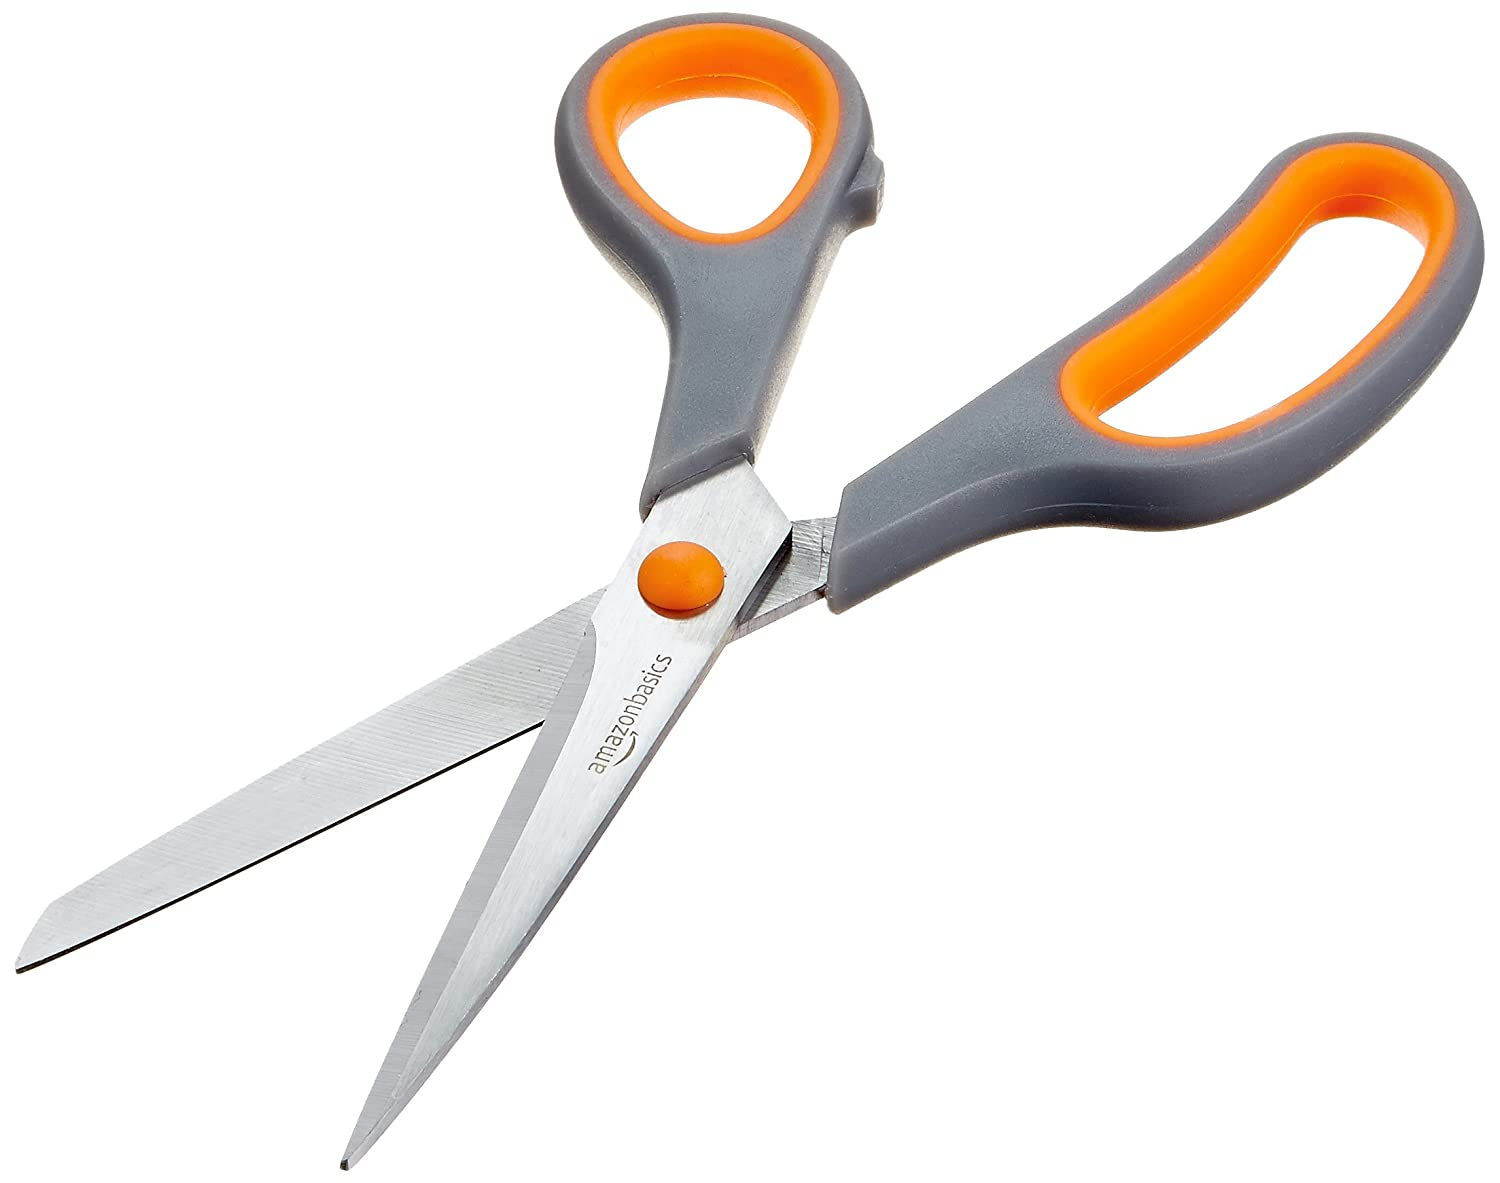 craft scissors orange black handles